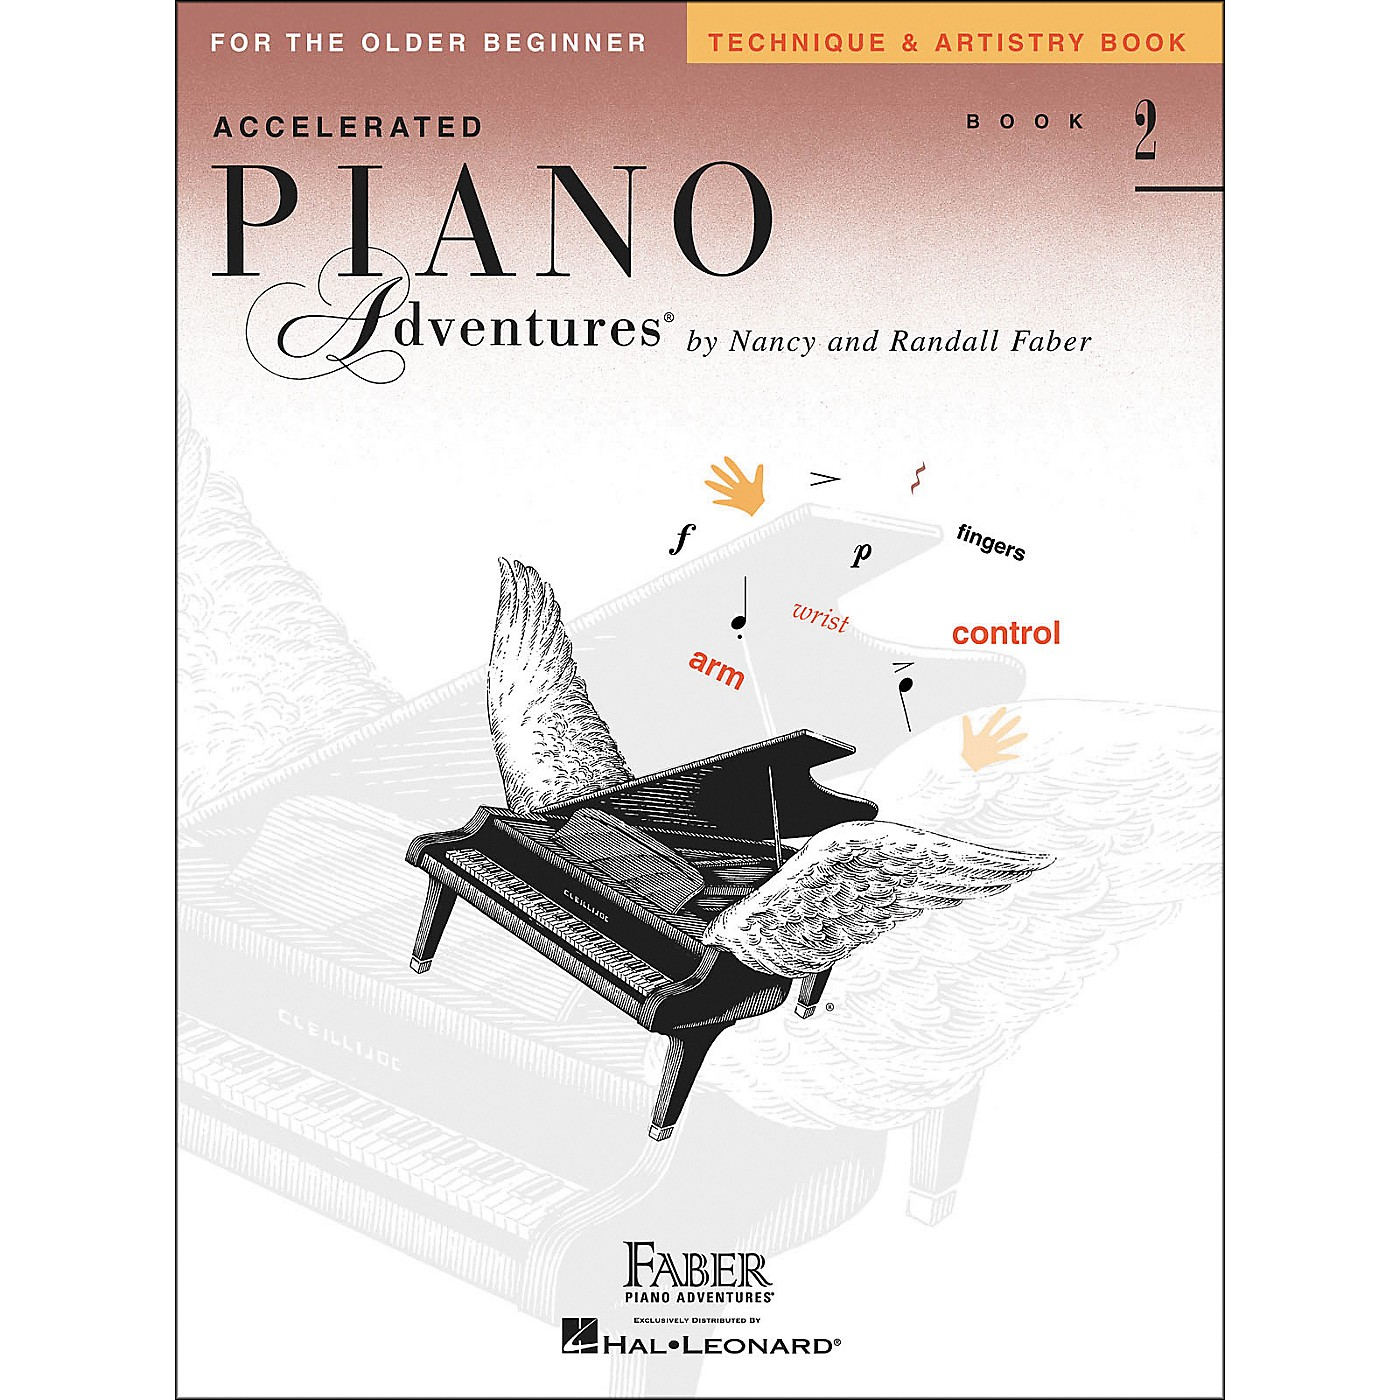 Faber Piano Adventures Accelerated Piano Adventures Technique & Artistry Book 2 for The Older Beginner - Faber Piano thumbnail